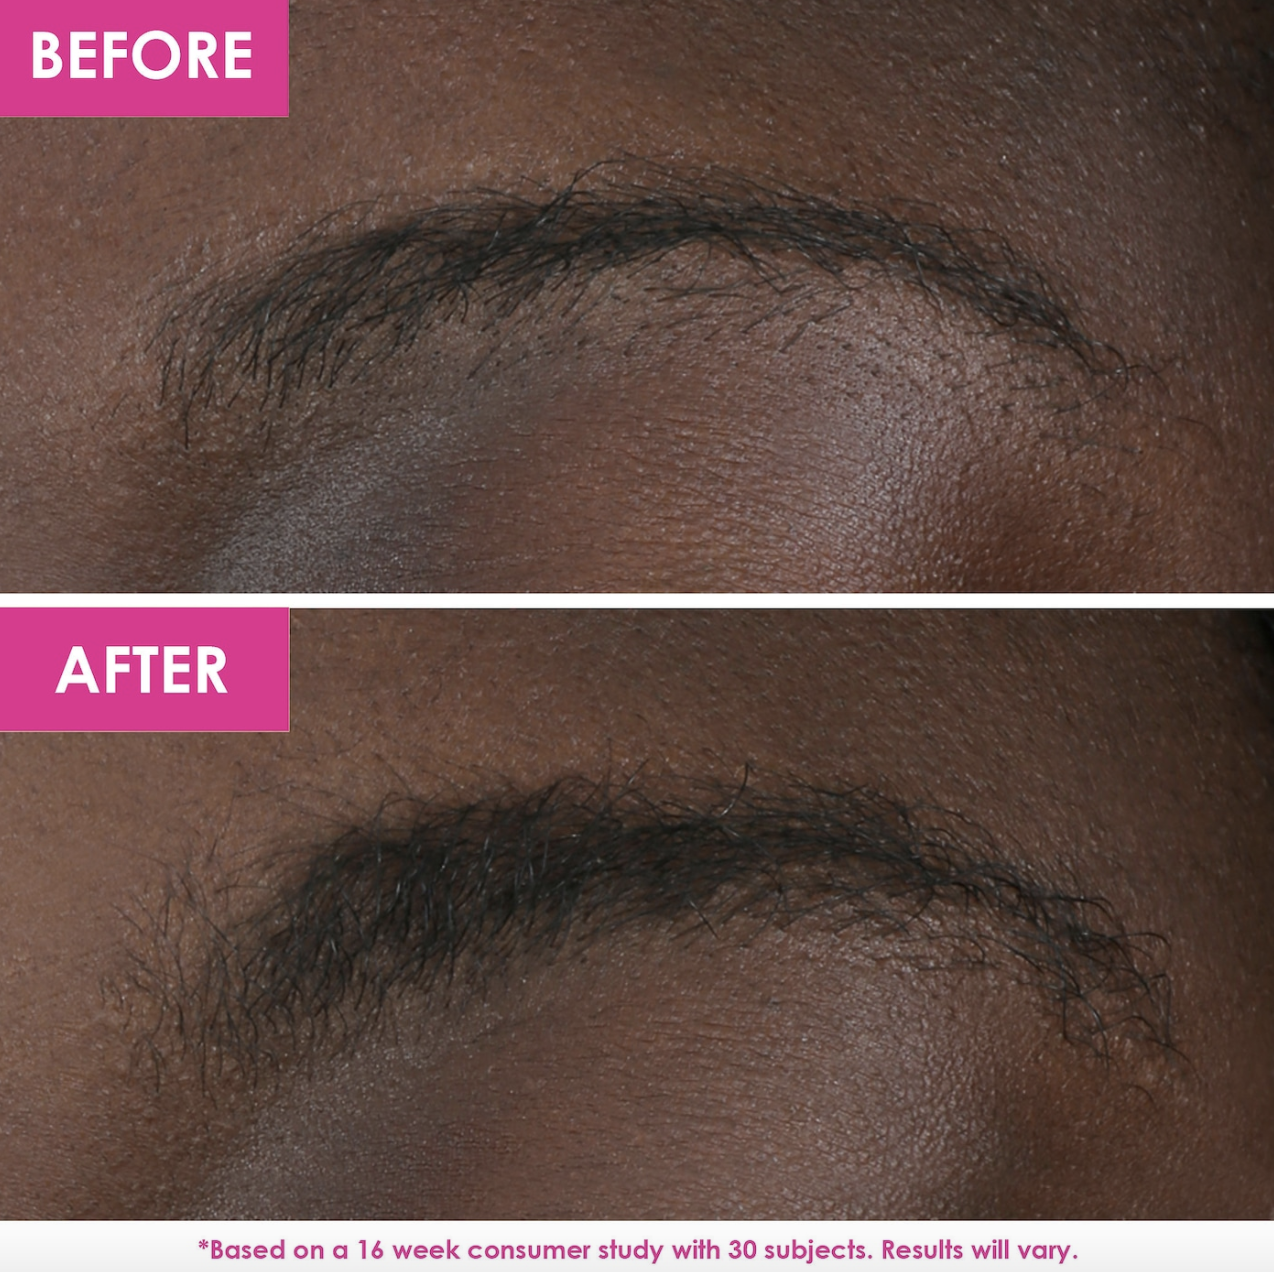 before and after photo of model with sparse eyebrows on top and visibly thicker eyebrows on bottom